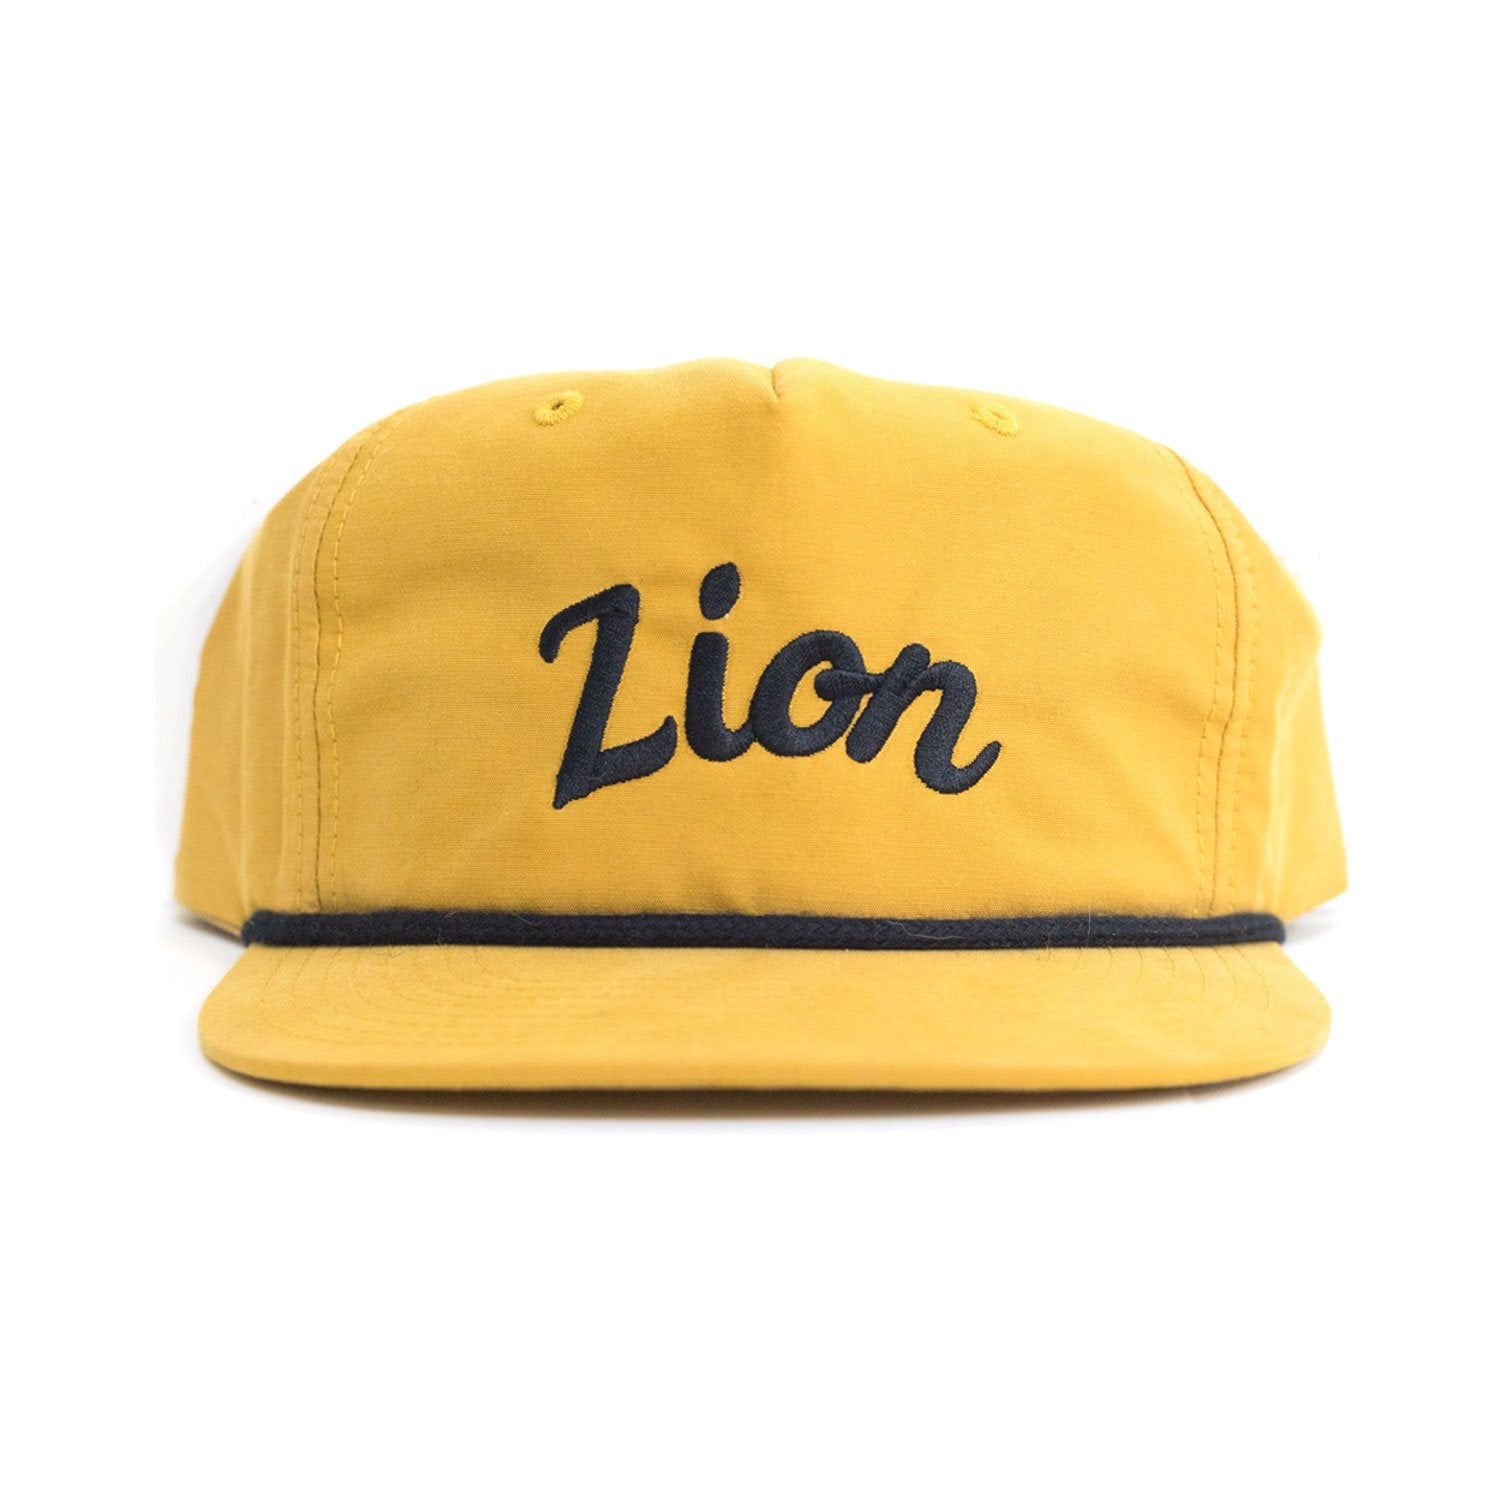 Zion Throwback Hat | Parks Project | National Park Hats